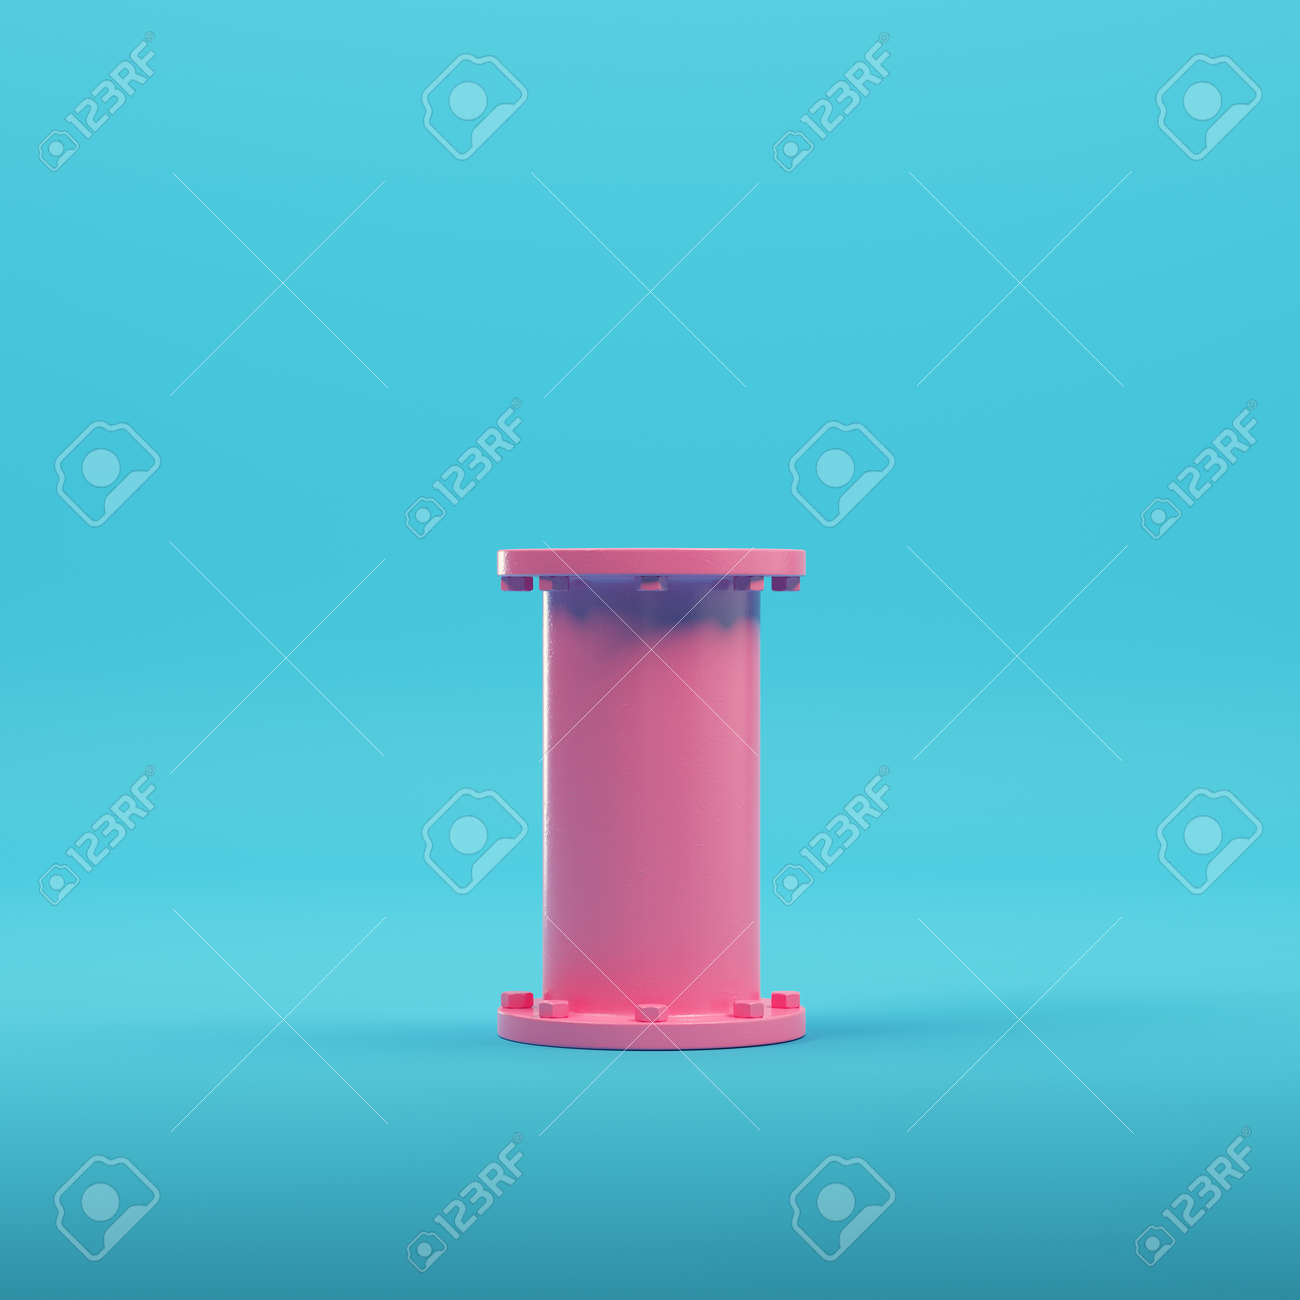 Pink empty glowing product display on bright blue background in pastel colors. Minimalism concept. 3d render - 172255044